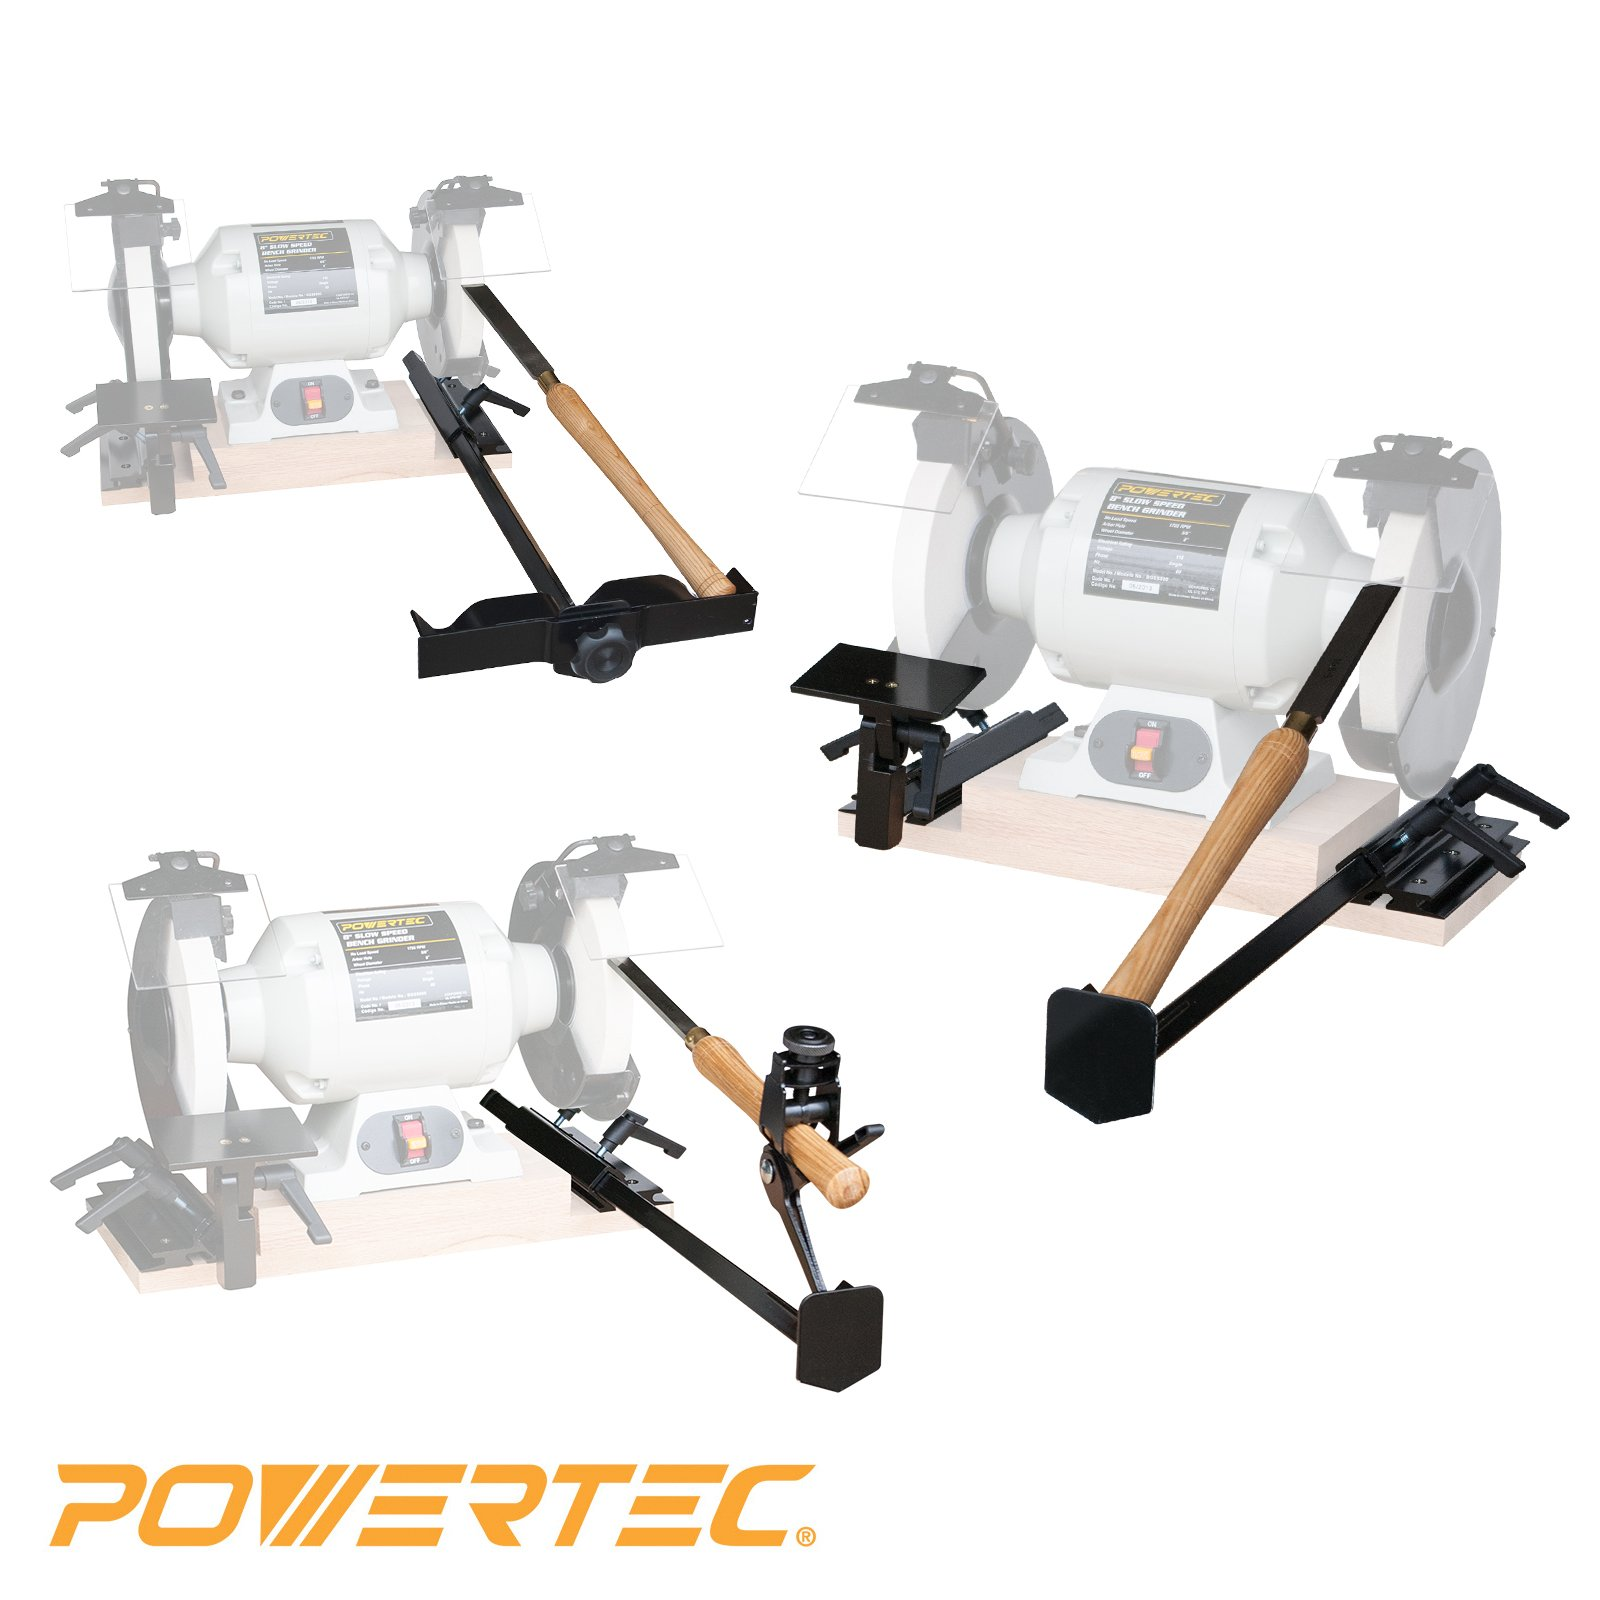 POWERTEC 71021 Bench Grinder Sharpening Jig Kit, Value Pack: 4-In-1